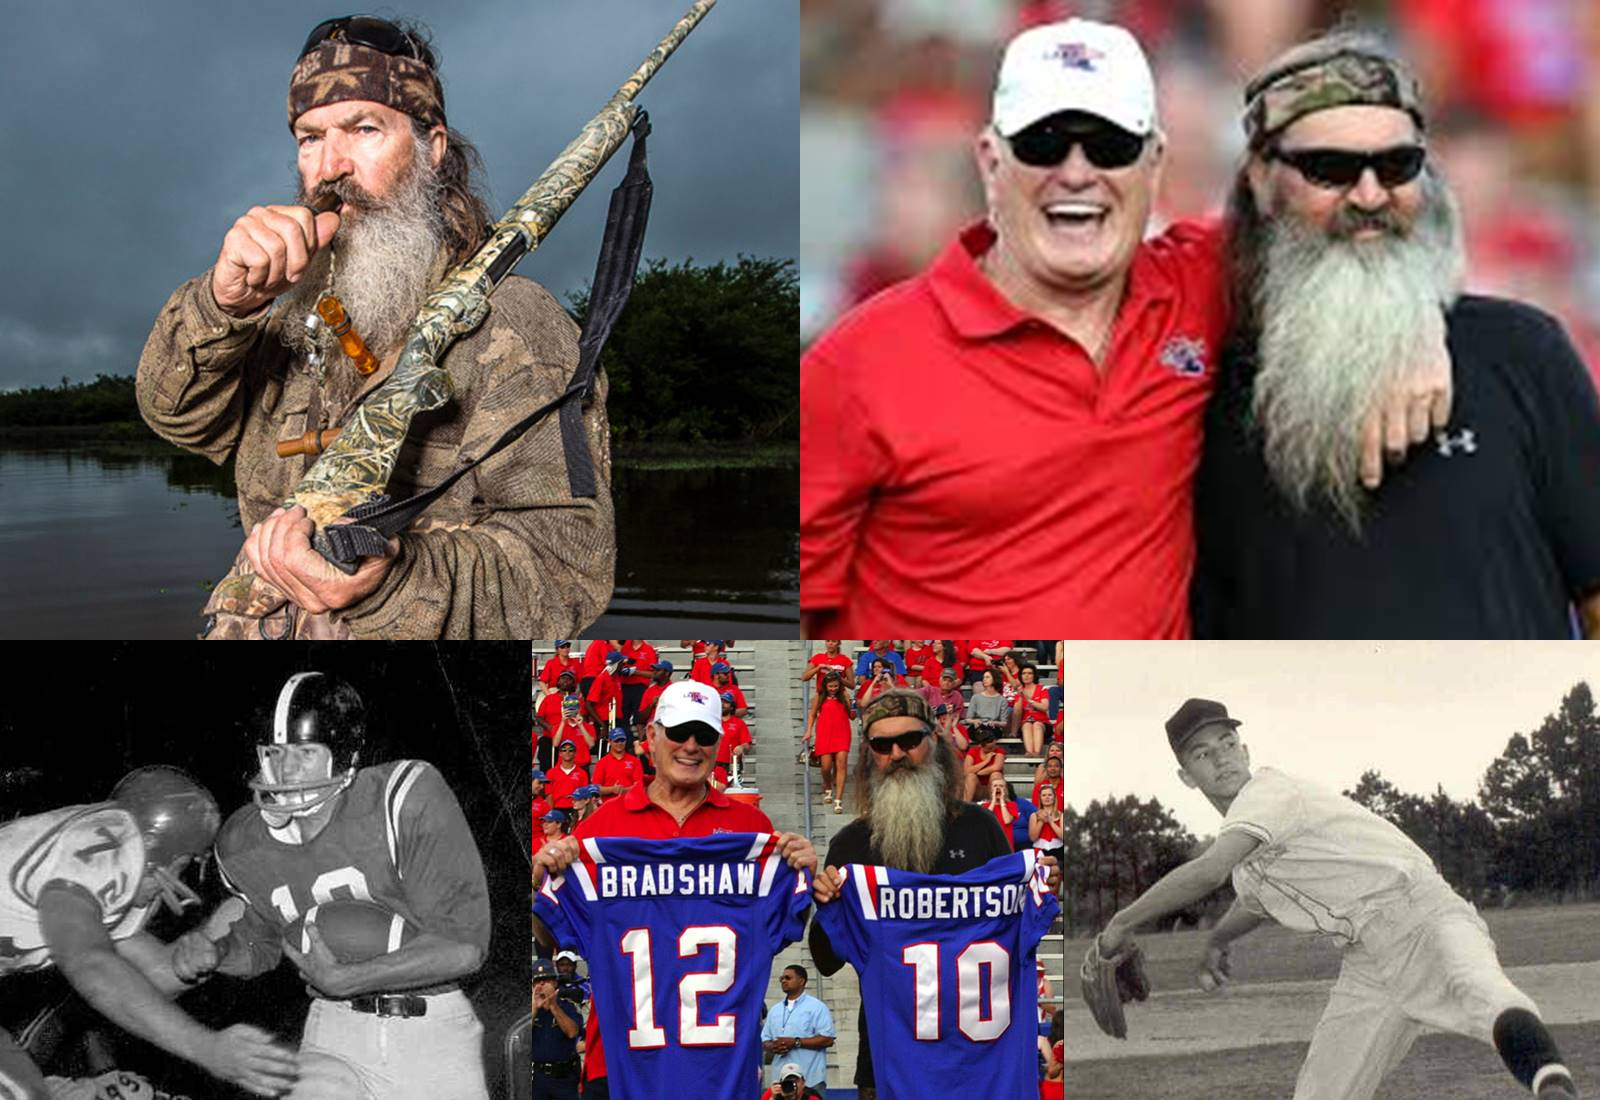 Robertson followed the call of the wild, became America's Duck Commander